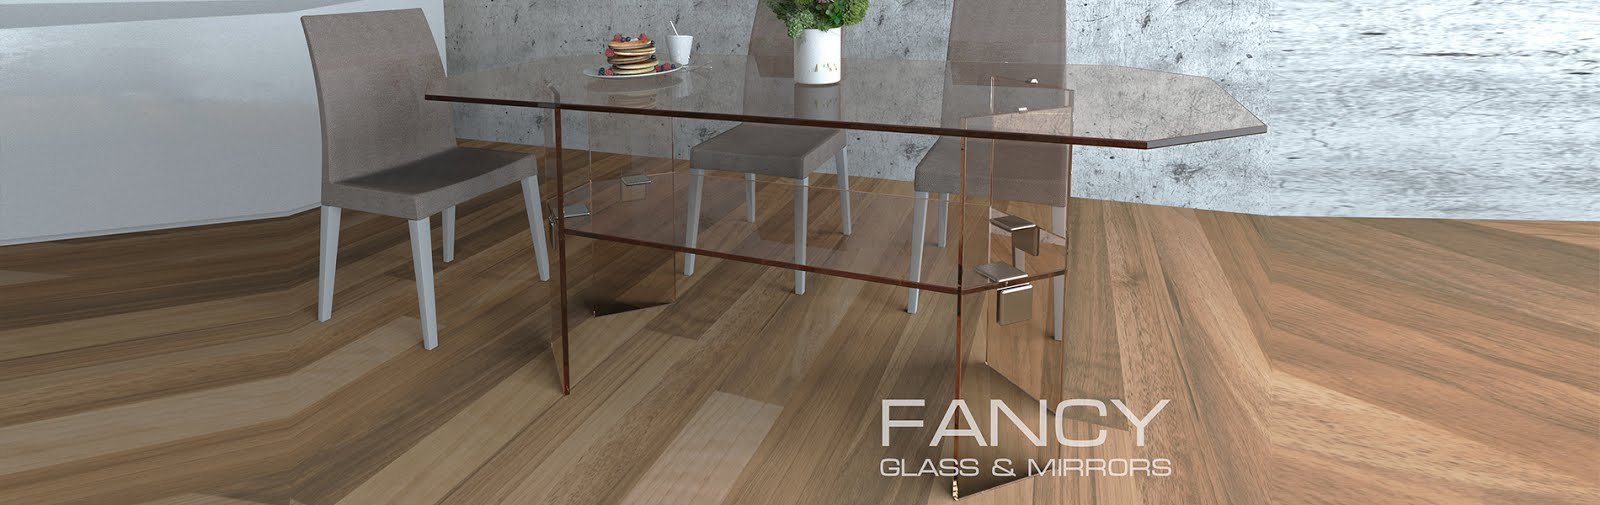 Interior with glass dining table with shelf